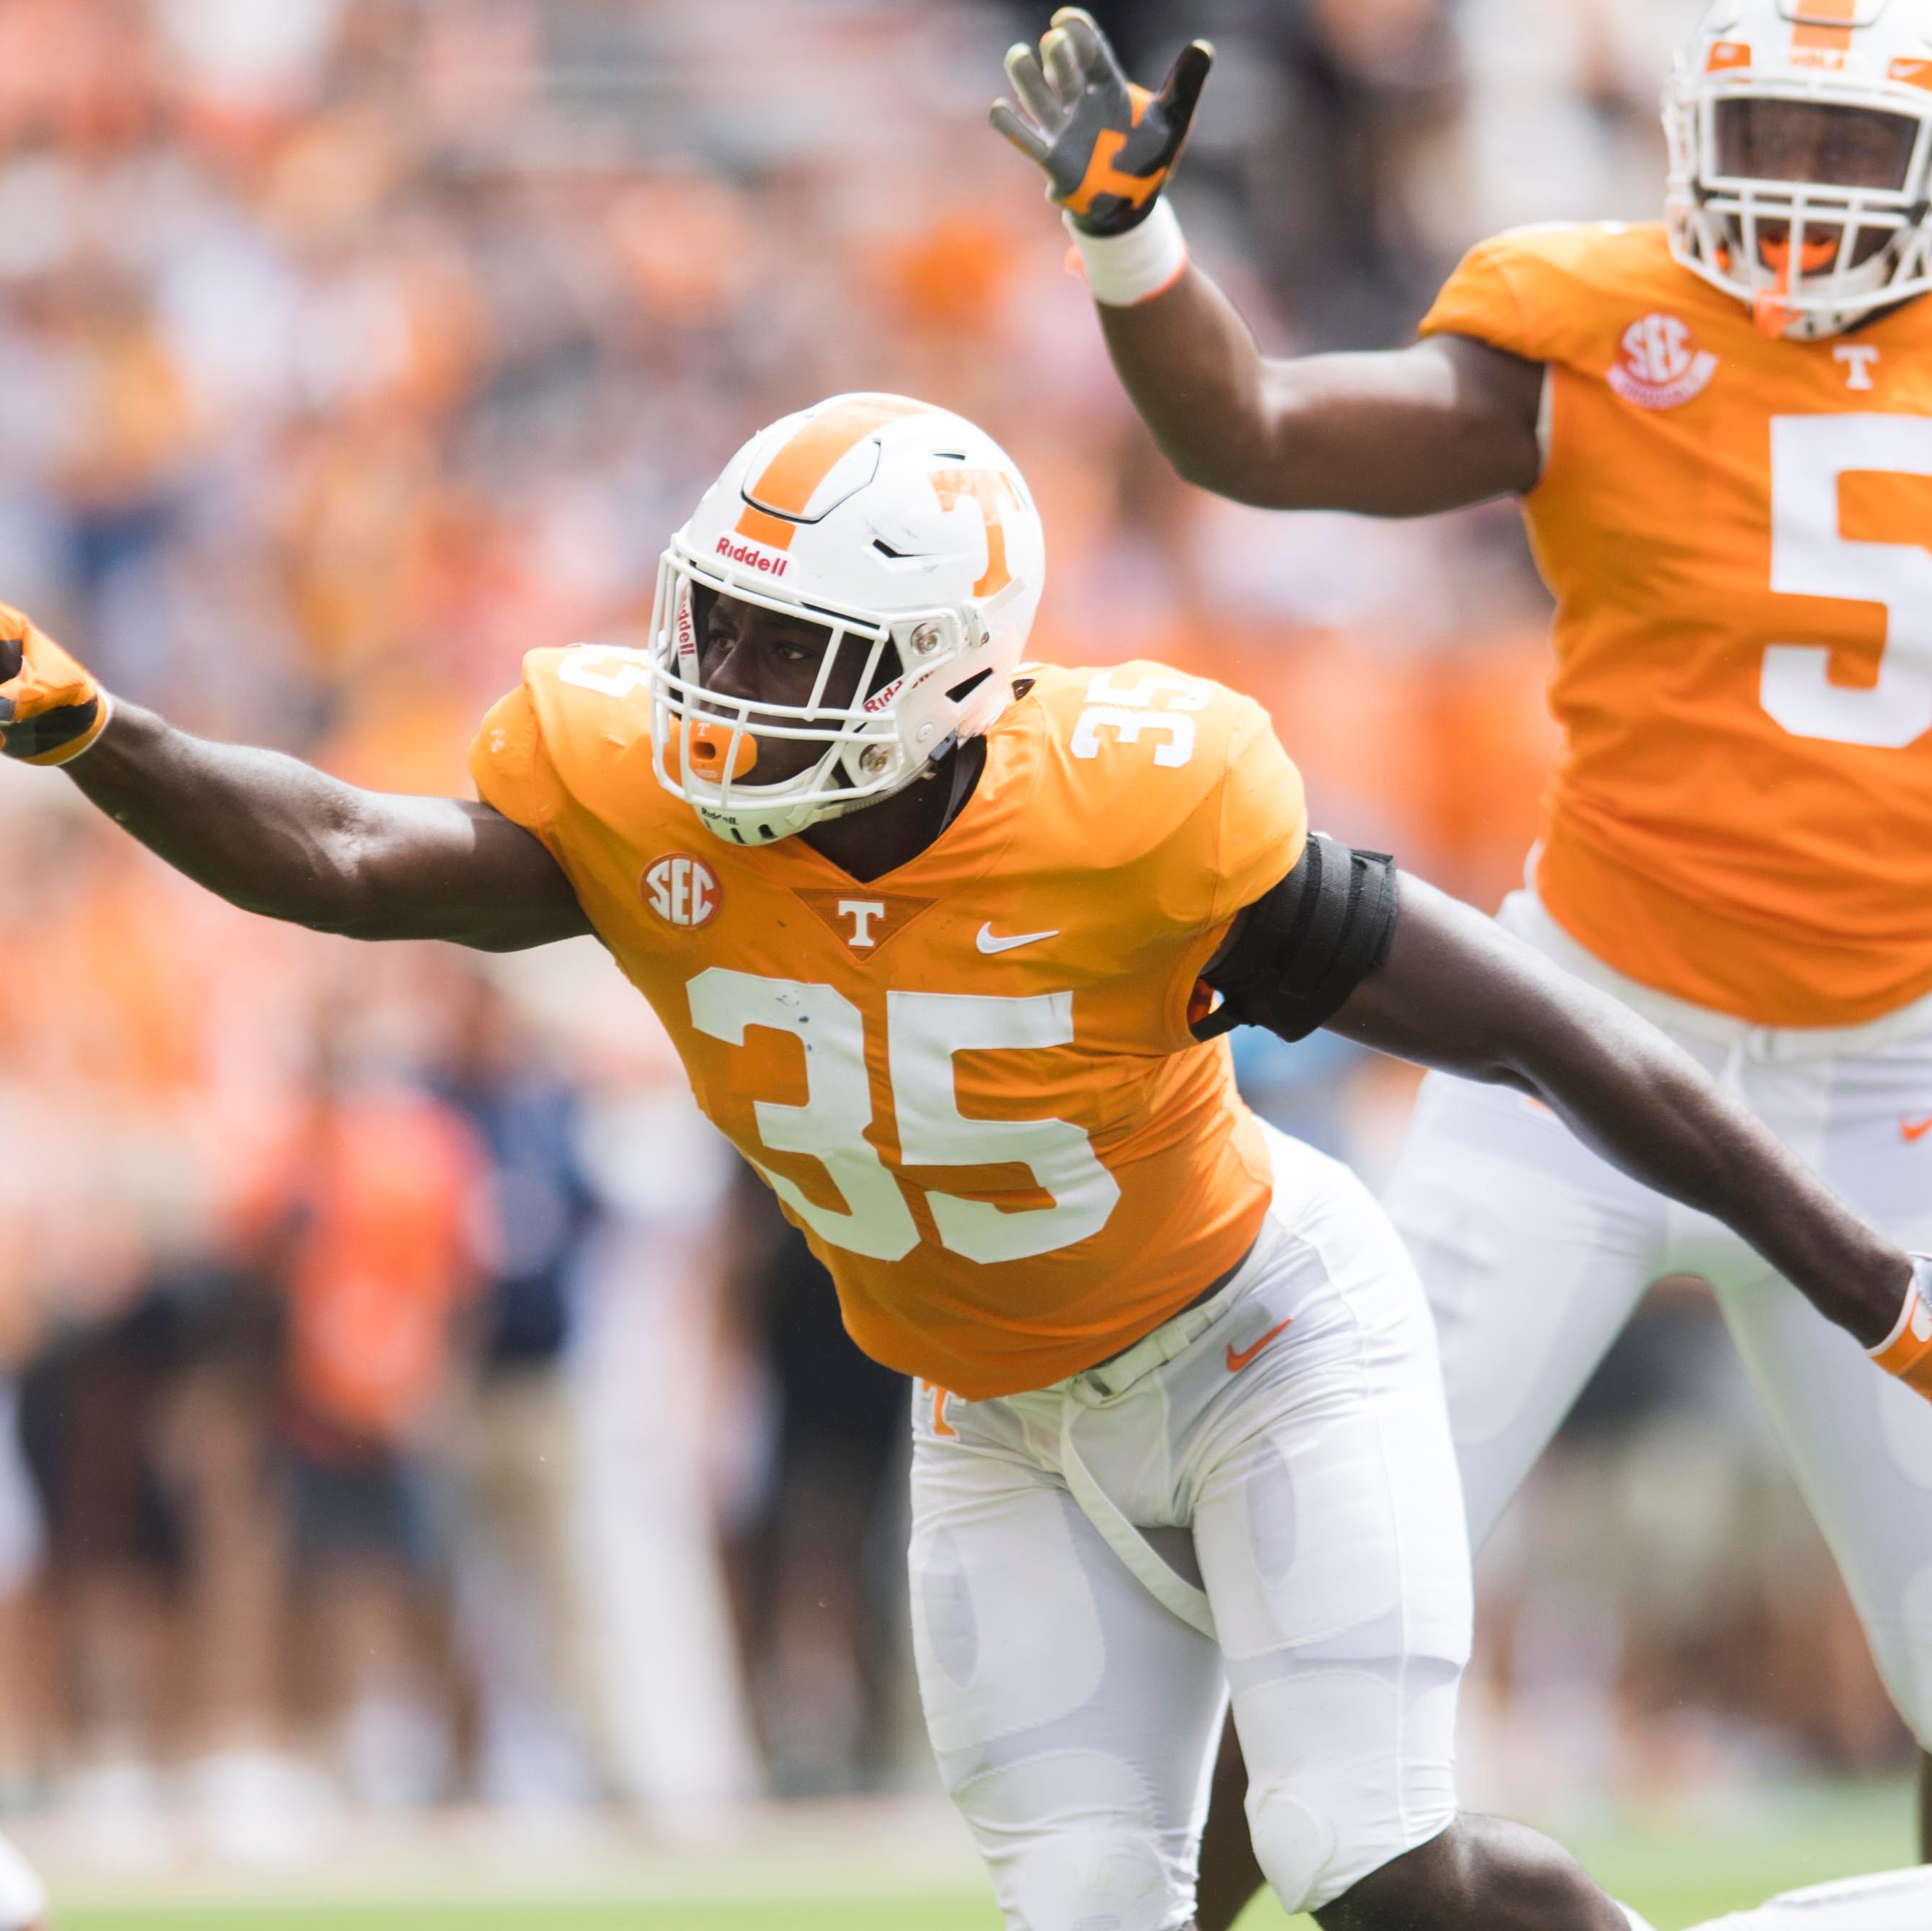 Tennessee linebacker Daniel Bituli (35) and lineman Kyle Phillips (5) celebrate after Bituli sacked UTEP quarterback Kai Locksley (1) on Saturday, September 15, 2018.